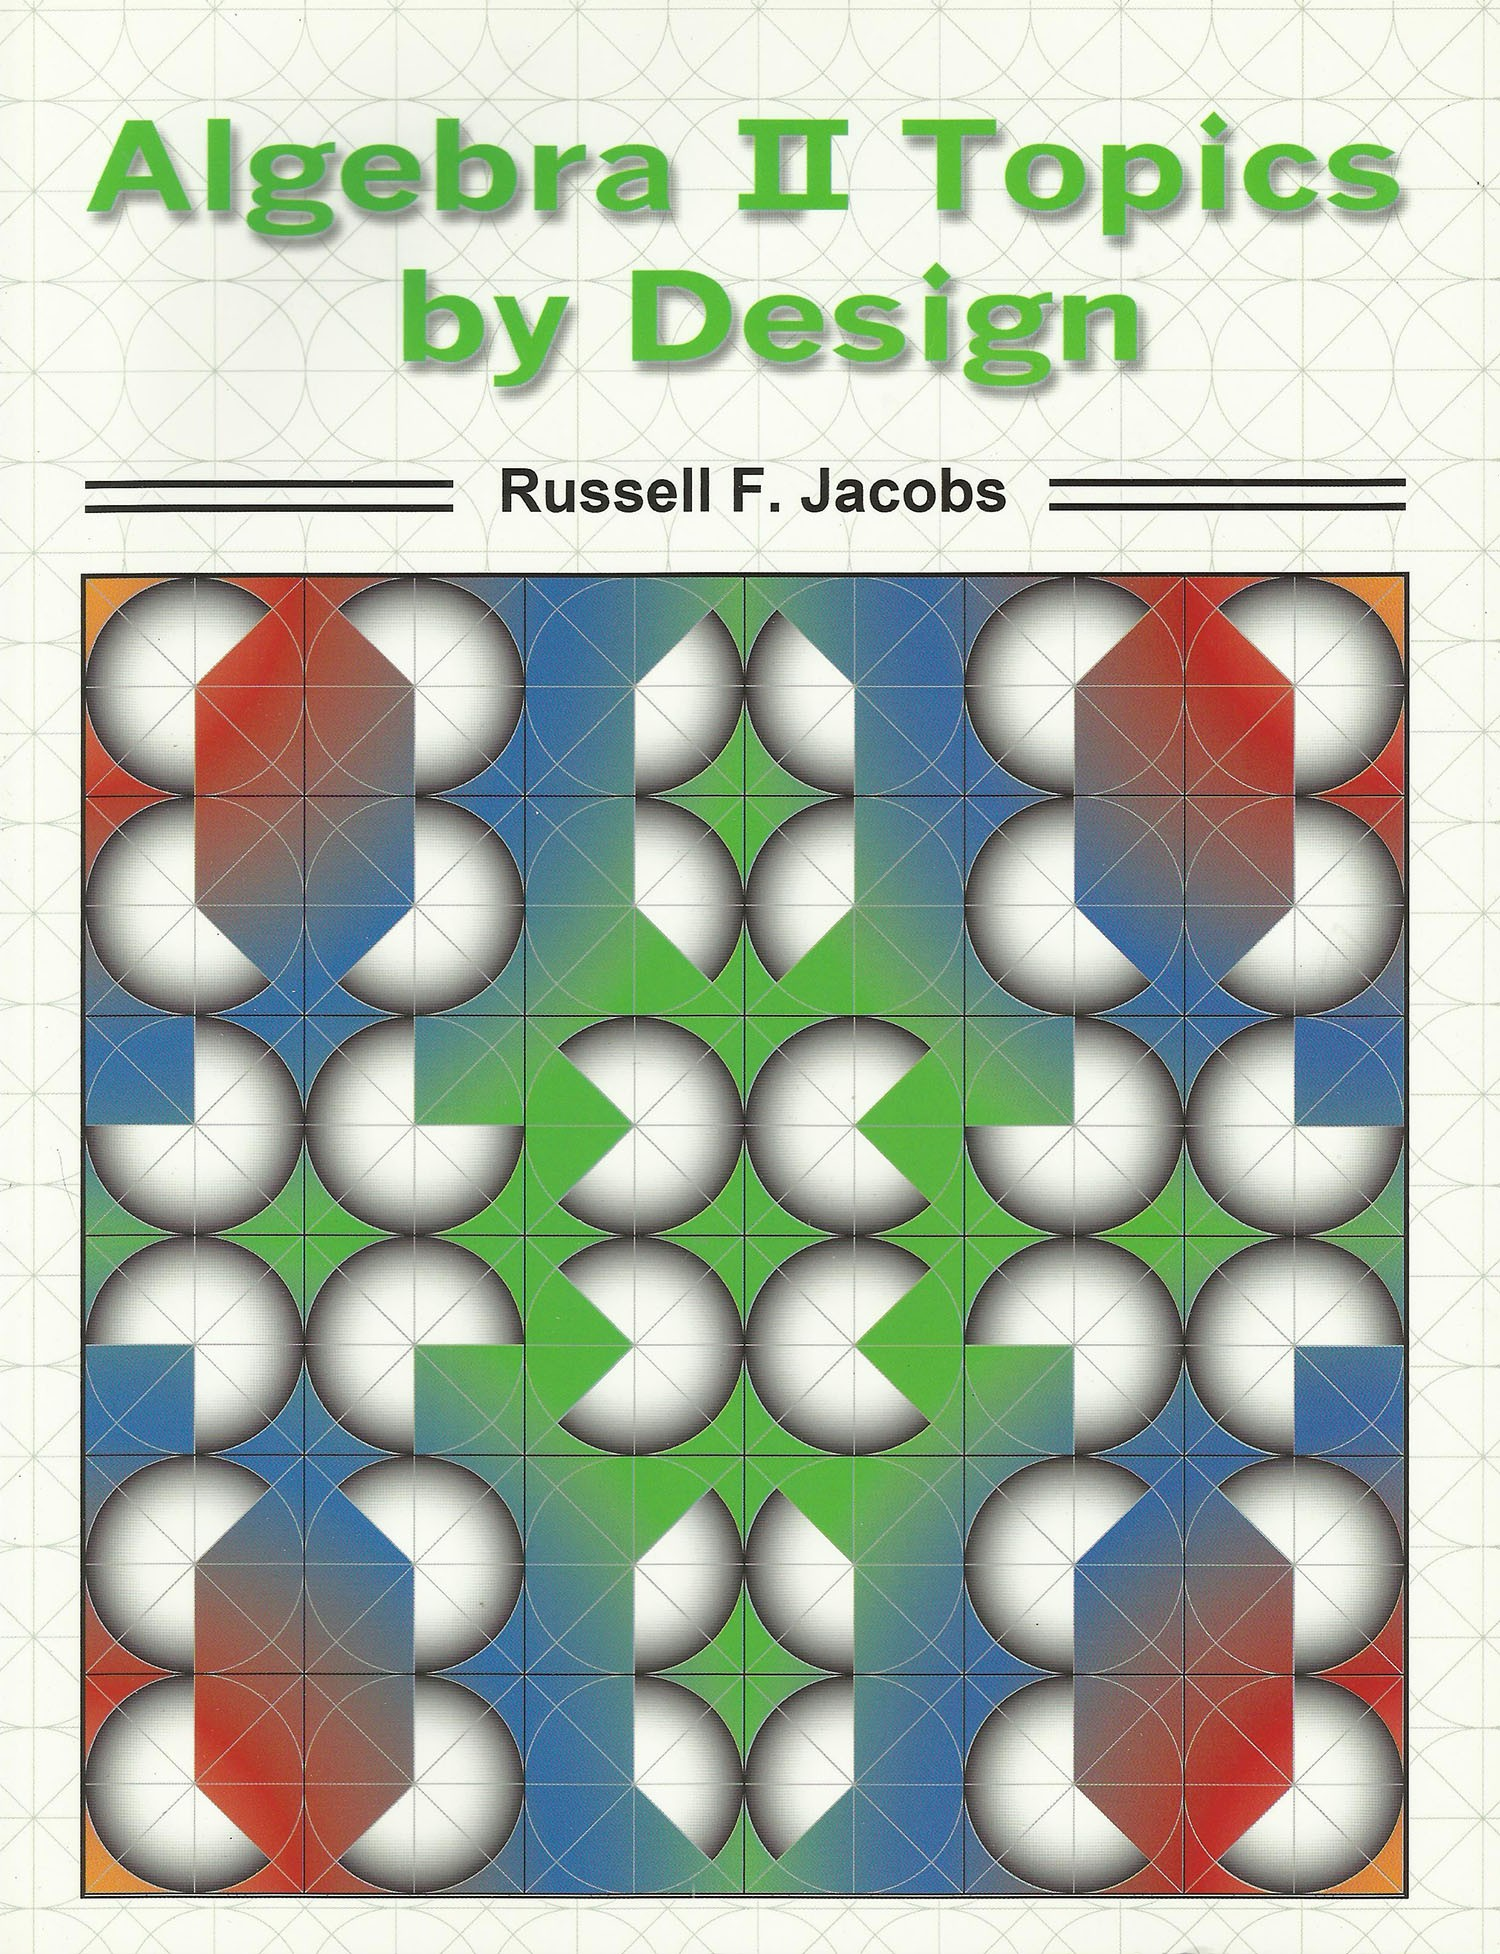 Algebra II Topics by Design